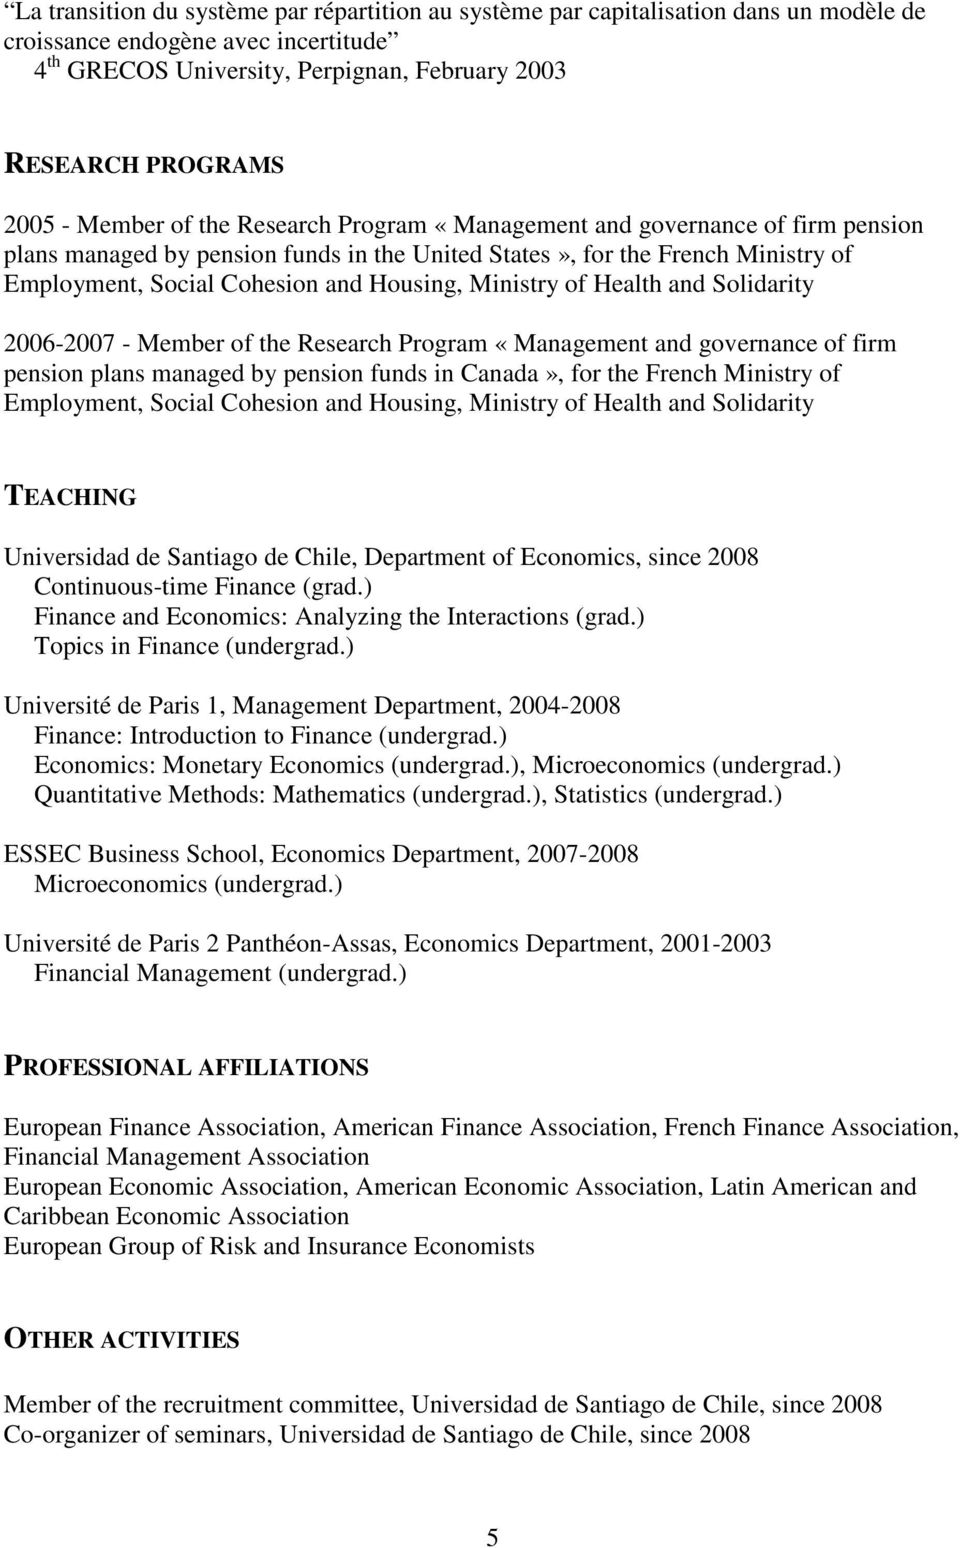 Ministry of Health and Solidarity 2006-2007 - Member of the Research Program «Management and governance of firm pension plans managed by pension funds in Canada», for the French Ministry of